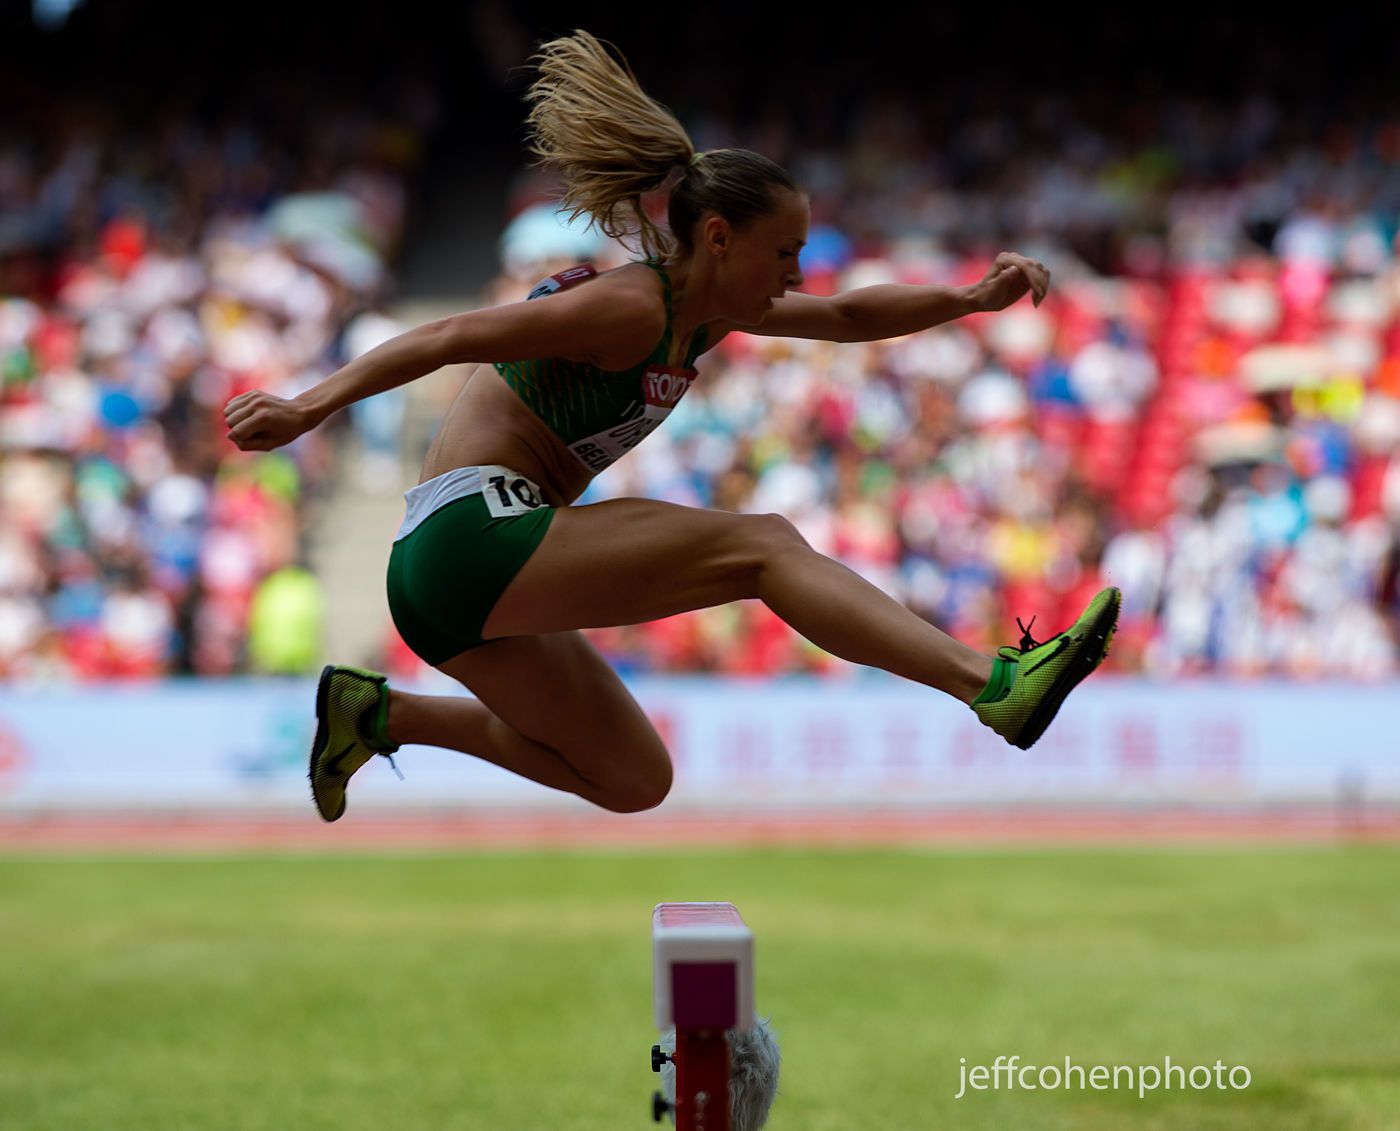 1beijing2015_day3_o_flaherty_steeple_w_jeff_cohen_photo_11122_web.jpg